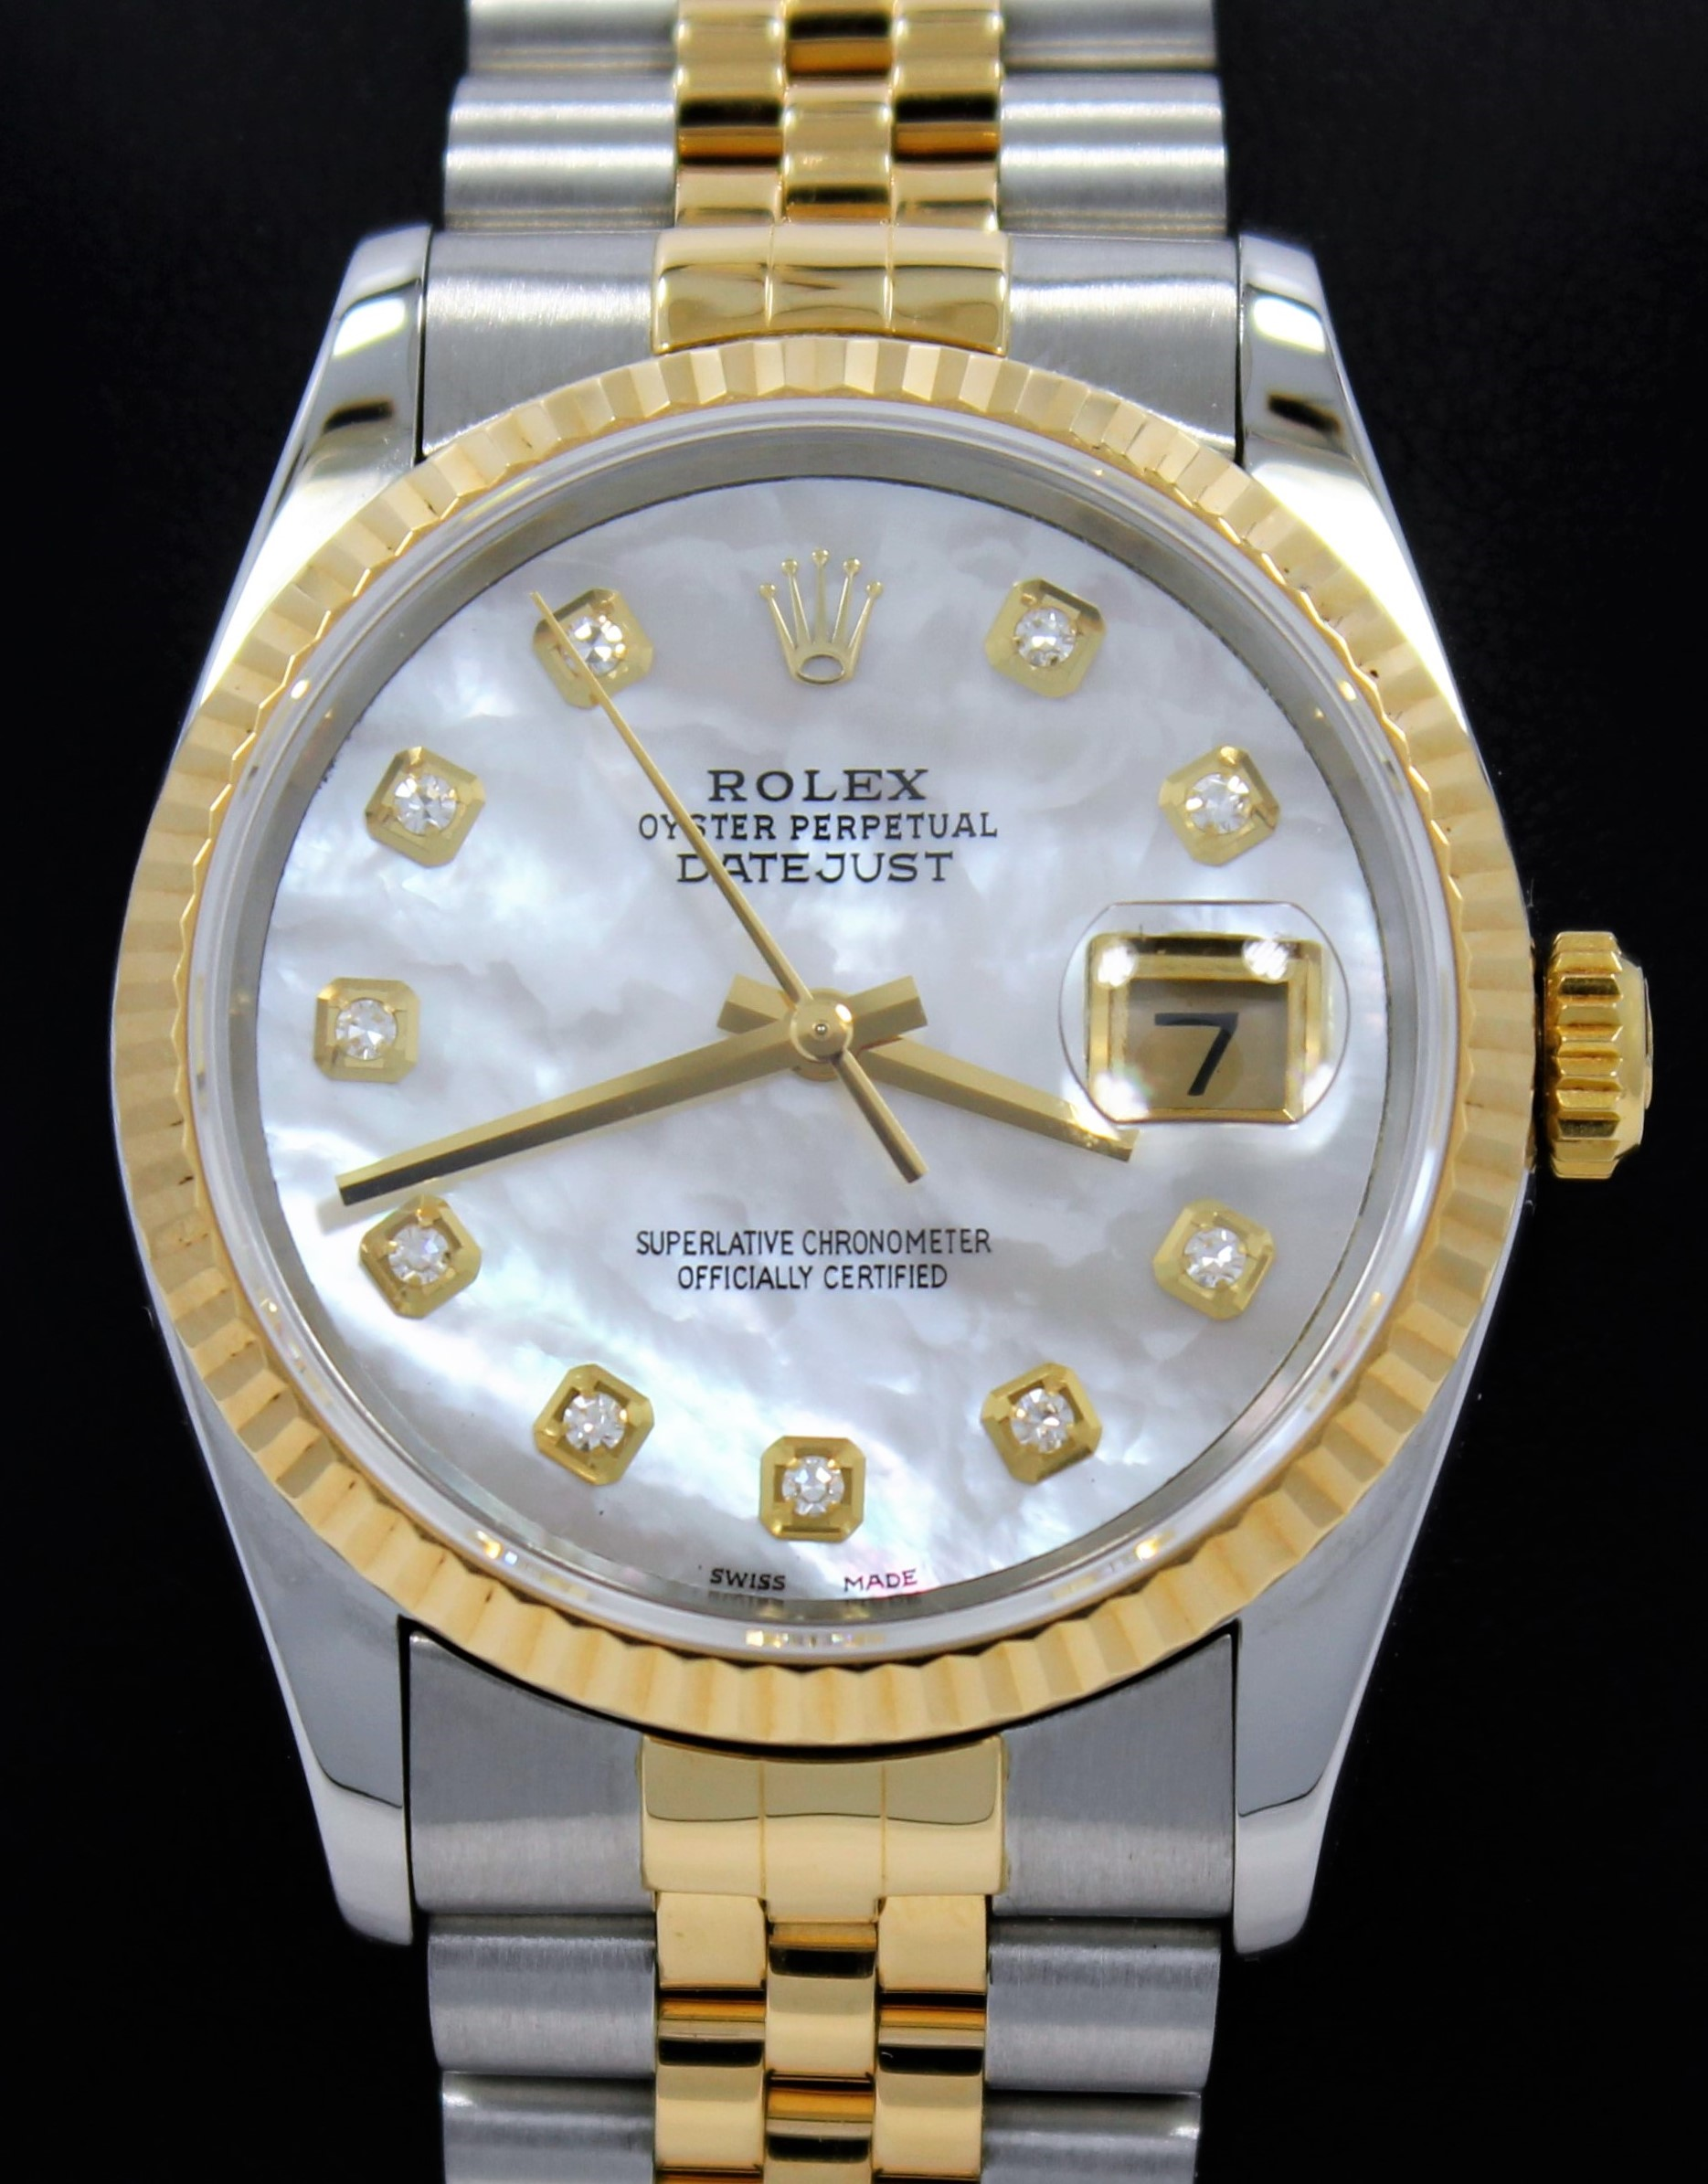 Copy Rolex Datejust White Dial 36MM Watches